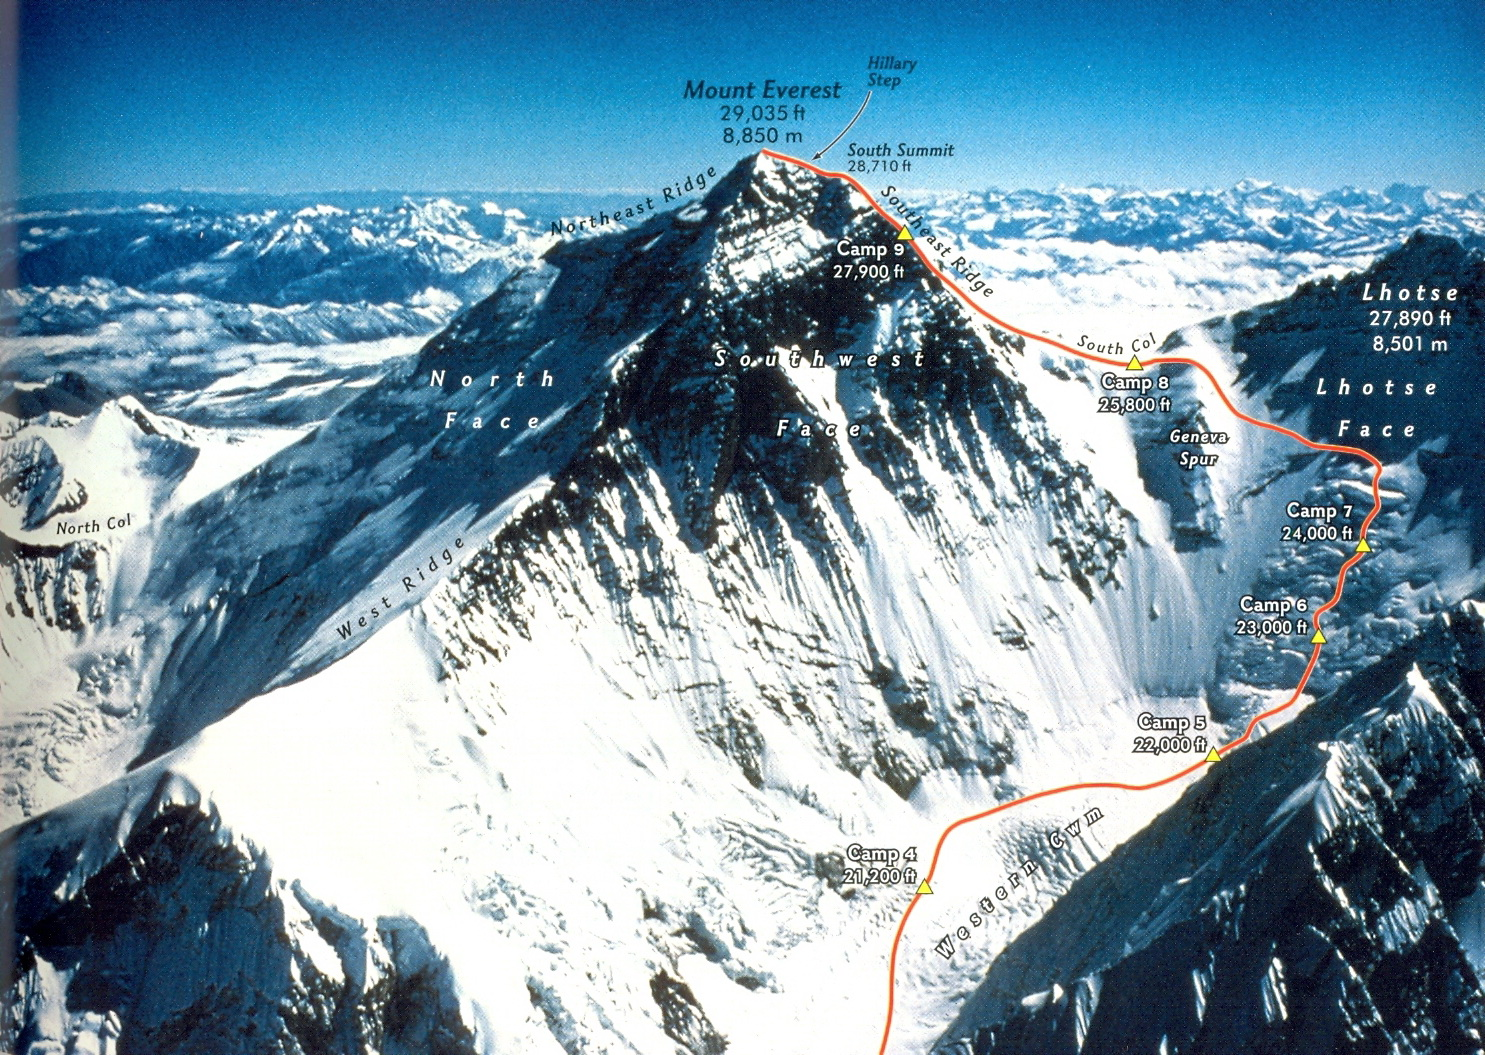 a recount about the storm on the south col of mount everest in 1996